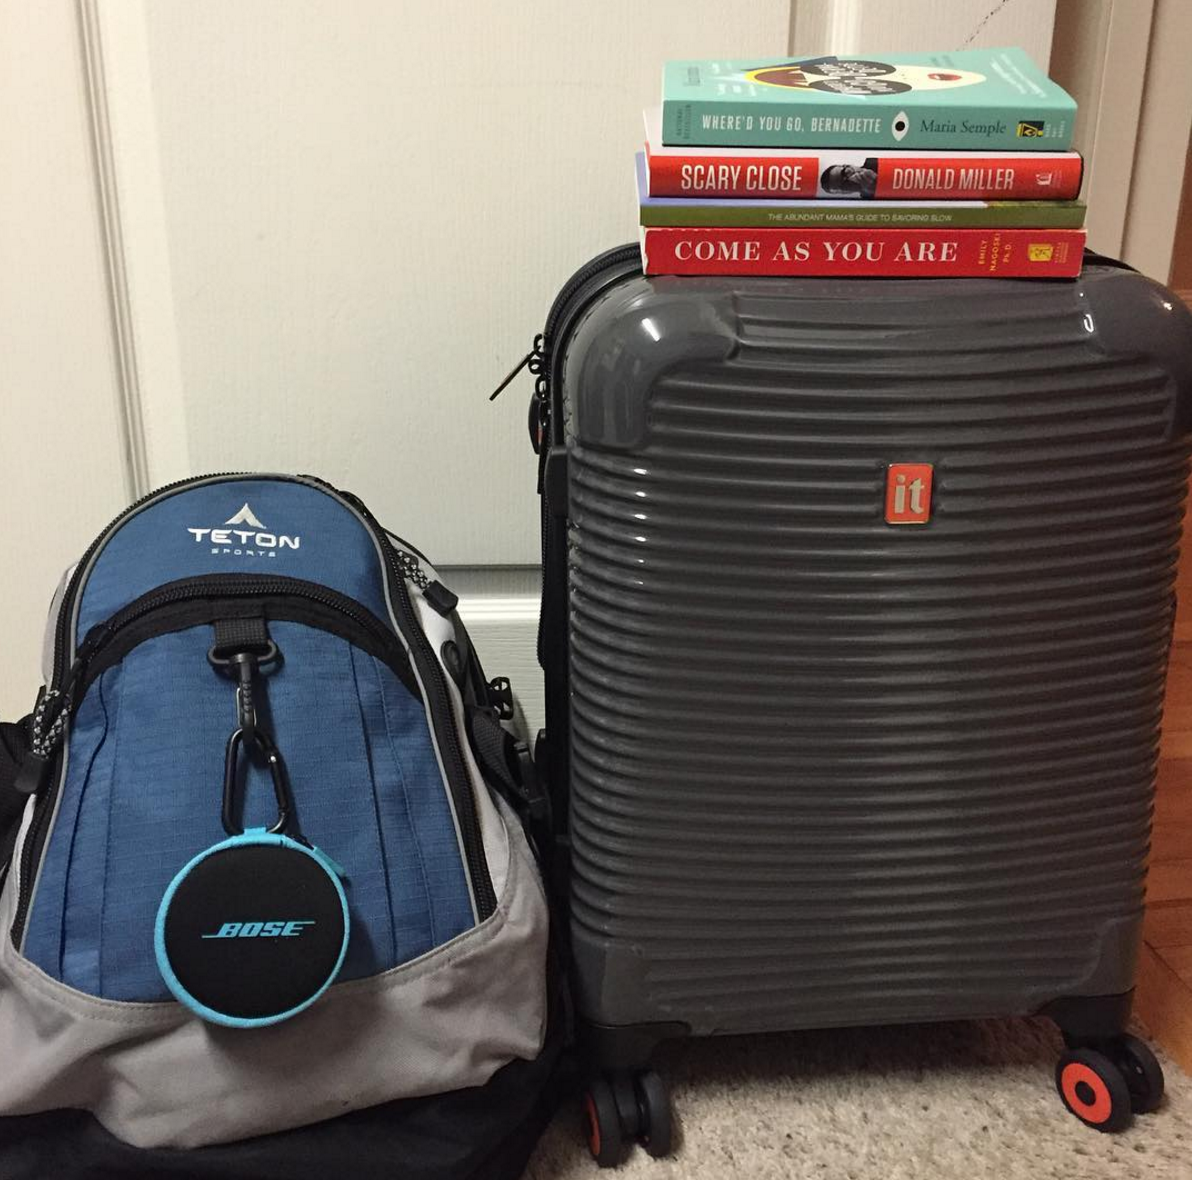 10 Things I Always Bring on Long Flights